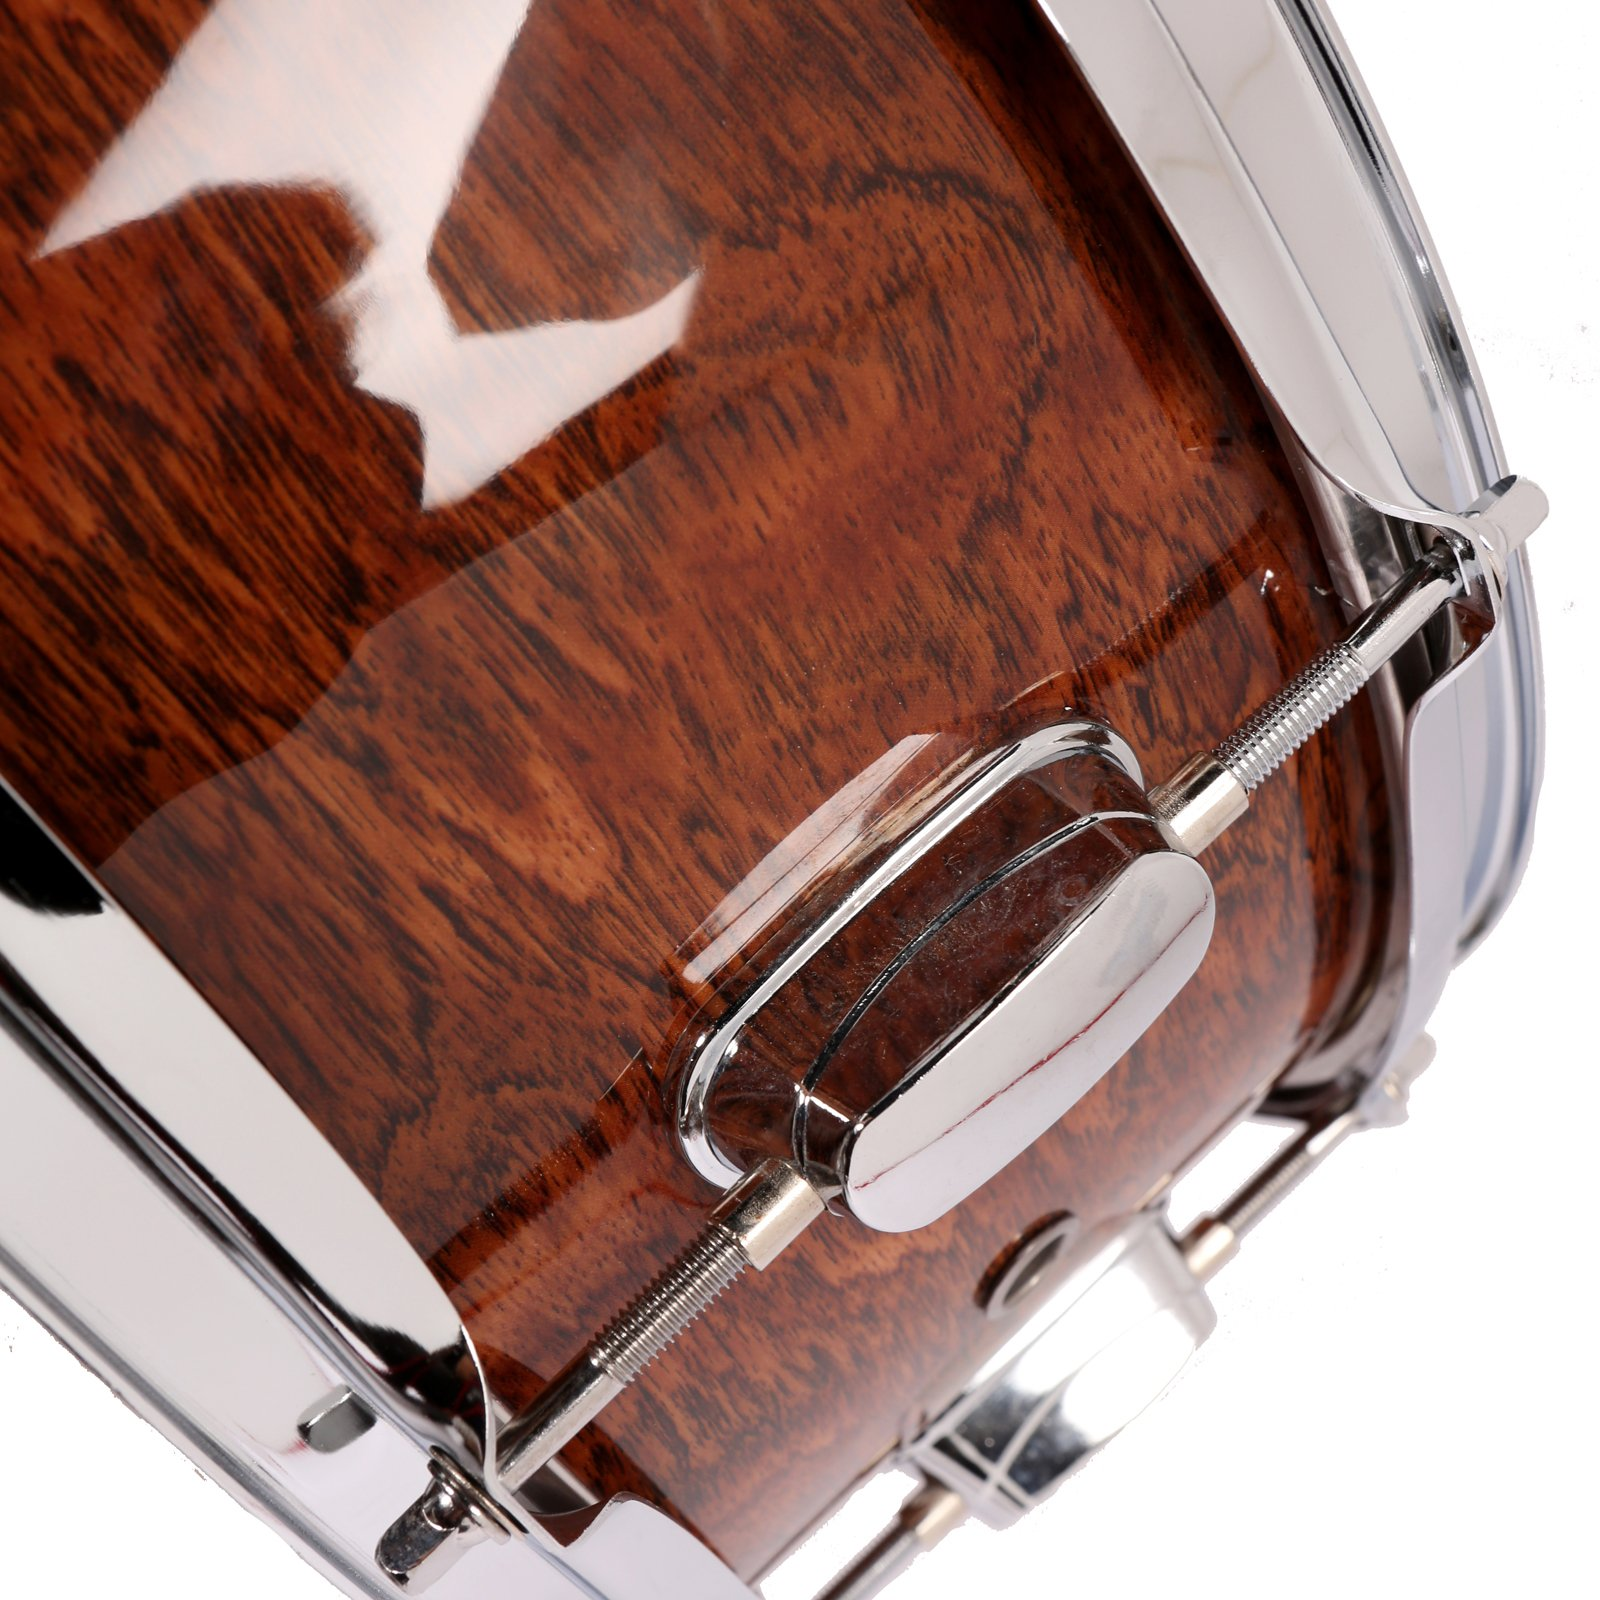 LAGRIMA Student Beginner Snare Drum W/Drum Key, Drumsticks and Strap|14x5.5 inch|Real Wood Shell|8 Metal Tuning Lugs by LAGRIMA (Image #8)